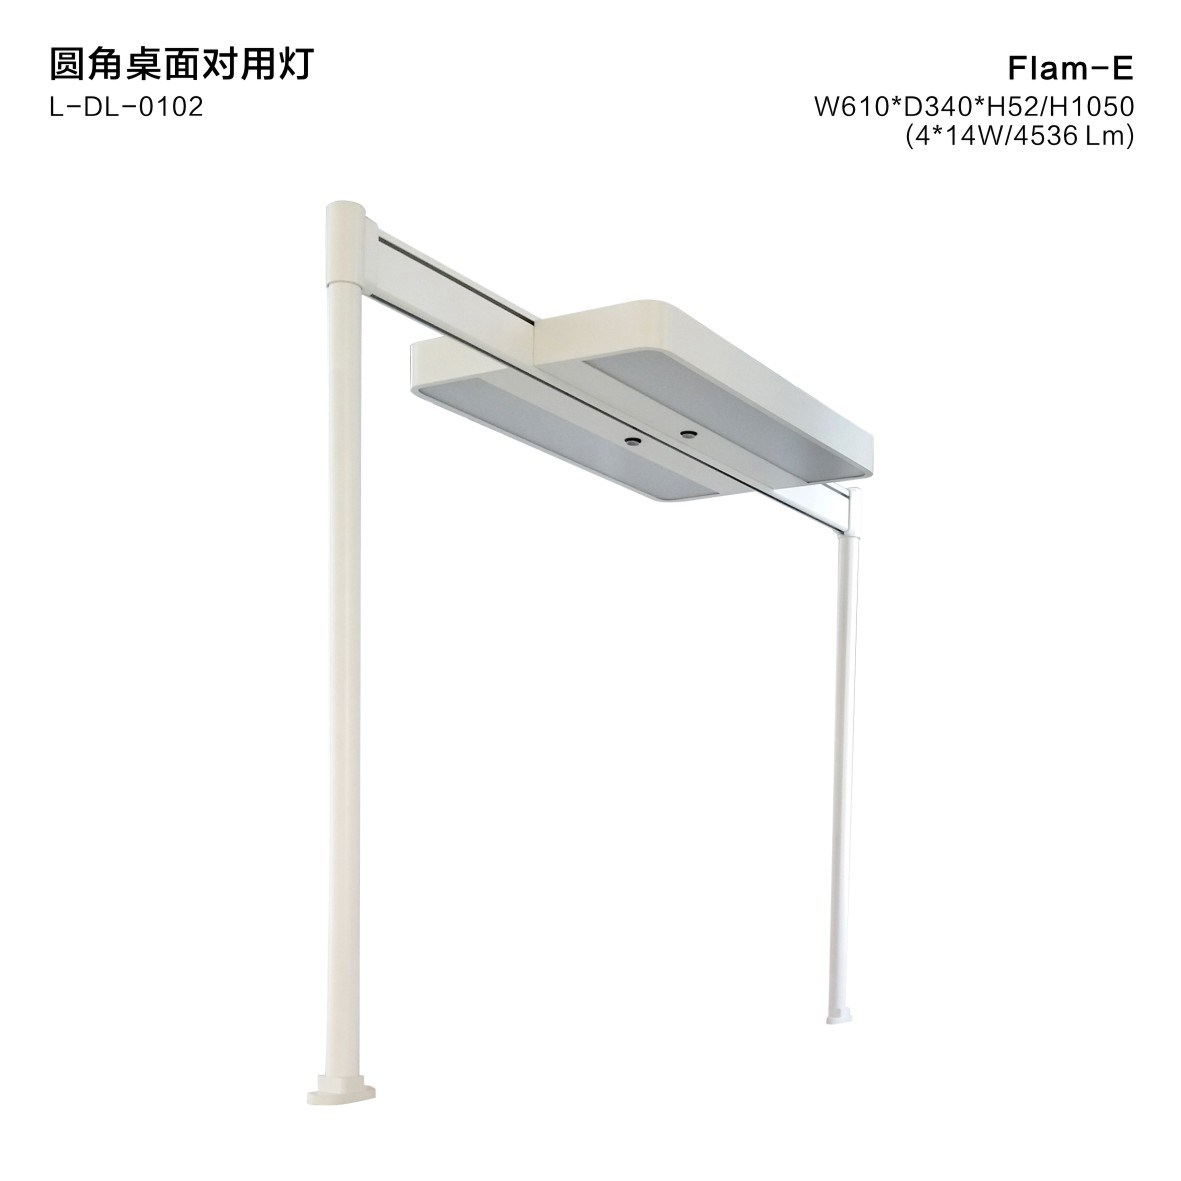 Guangzhou Uispair 10W 32V 4000K CRI 75-85 Extrusion Aluminum Alloy Table Desk Lamp